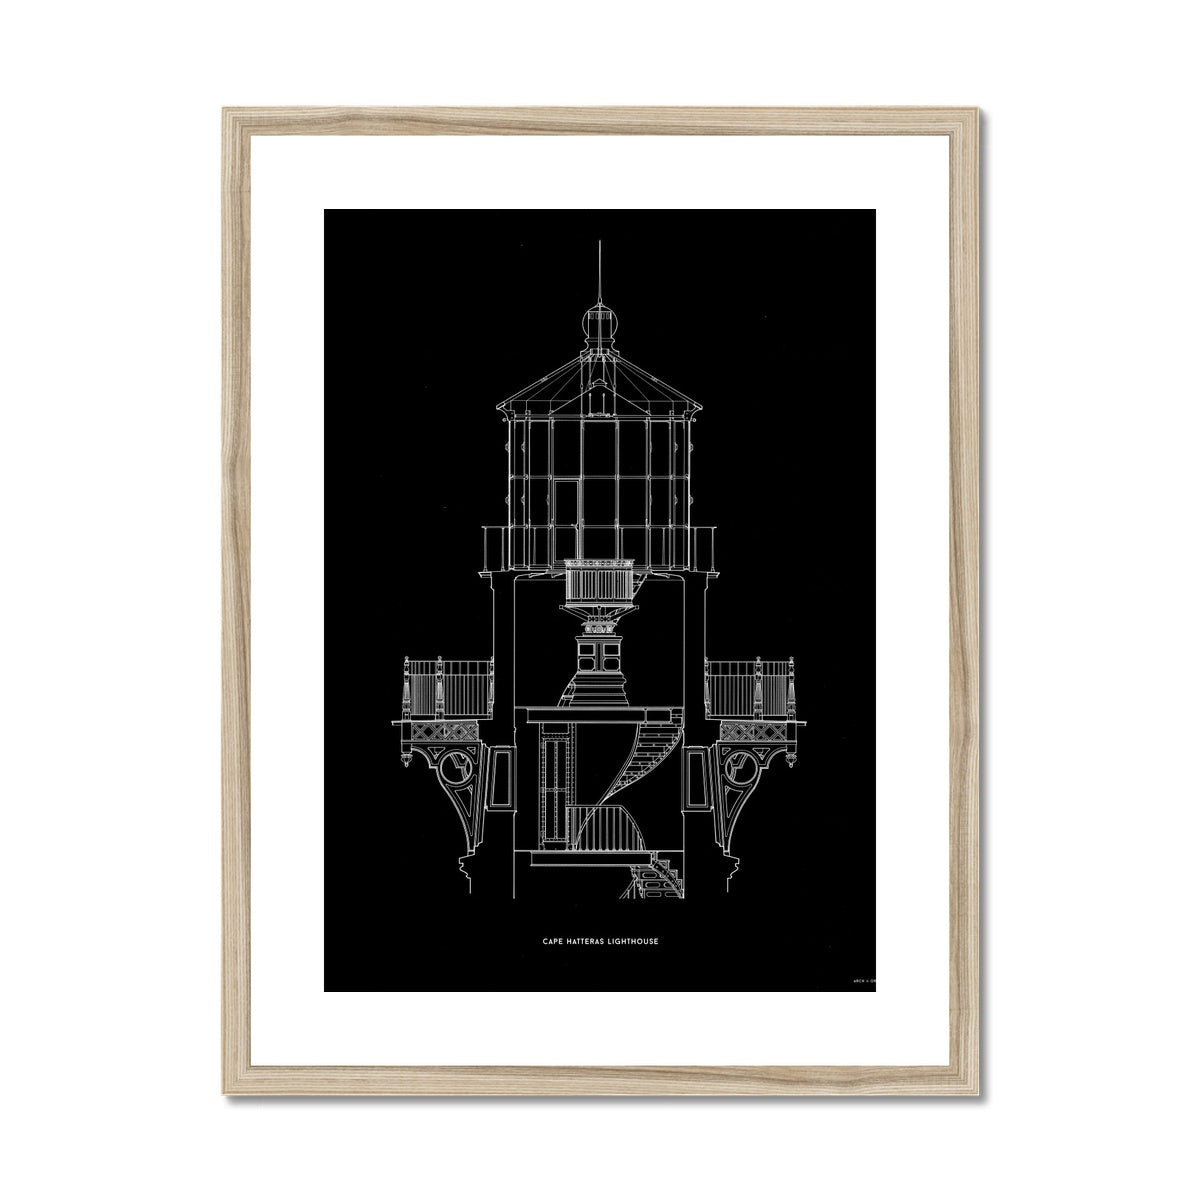 Cape Hatteras Lighthouse - Lantern Cross Section - Black -  Framed & Mounted Print